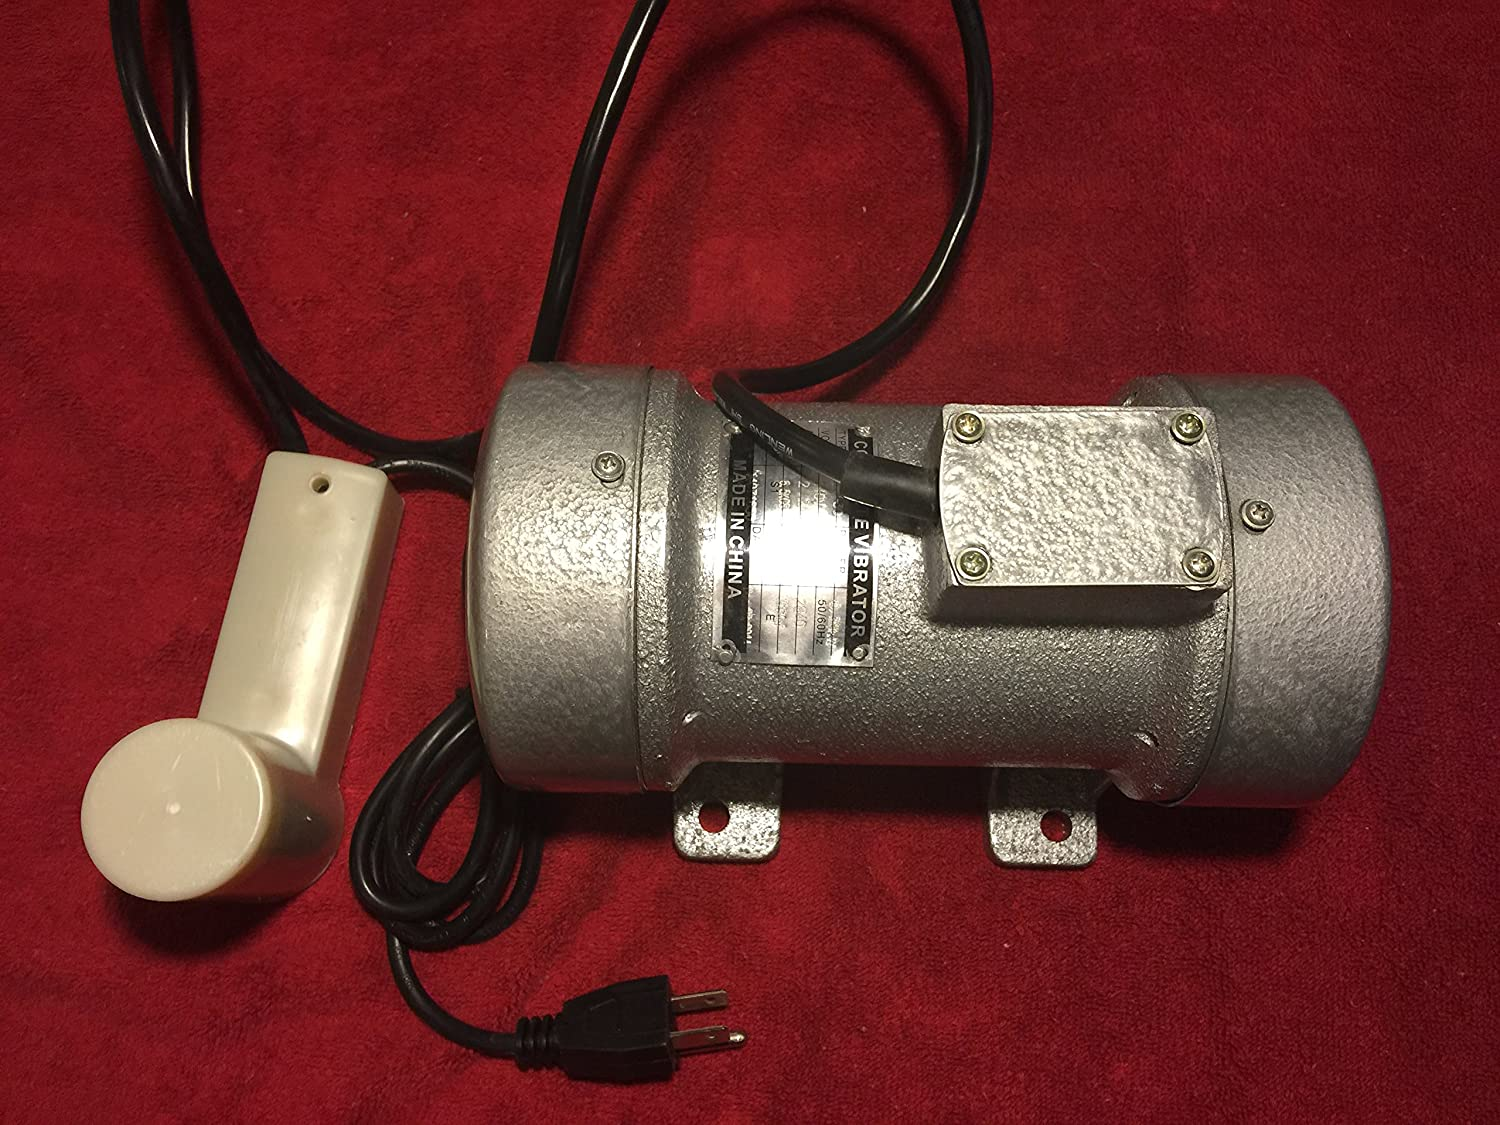 Concrete Vibration Vibrator Motor 1/3hp 110 volt 1320 lbs Sharp Force! Ships Canada and US Consmac Sev 30-110v